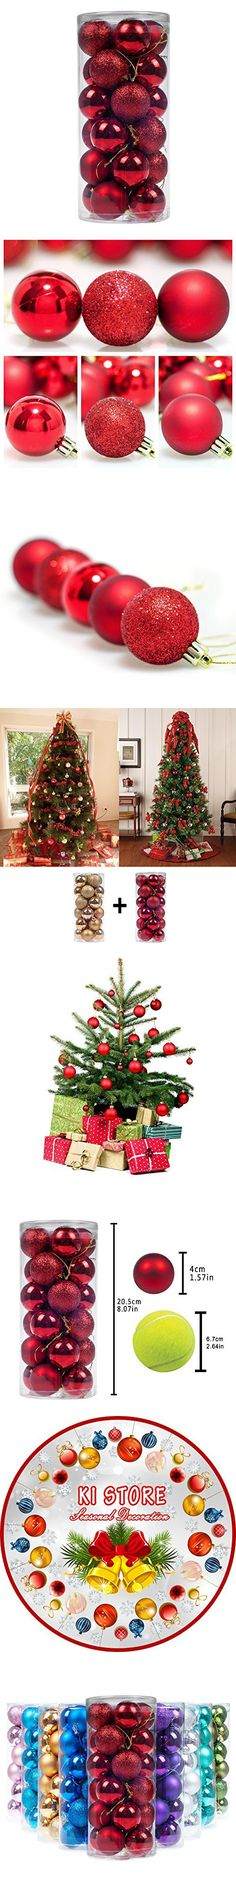 National Tree 7-1/2-Feet Dunhill Fir Hinged Tree with 700 Low Voltage Dual LED Lights with 9 Function Footswitch (DUH-330LD-75S)